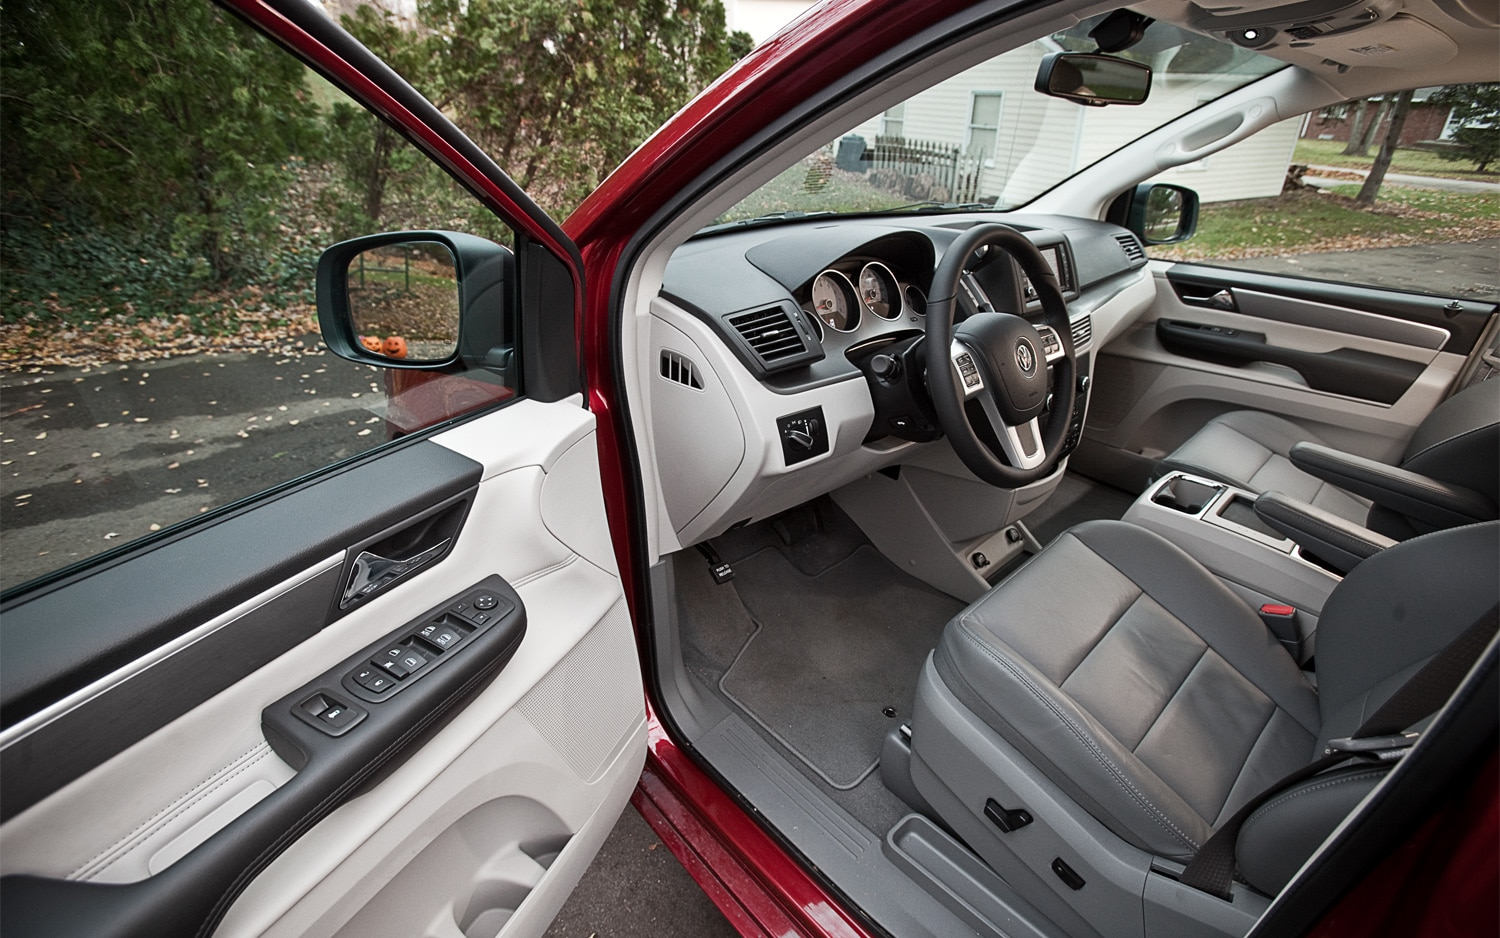 2012 Volkswagen Routan SEL - Editors' Notebook - Automobile Magazine